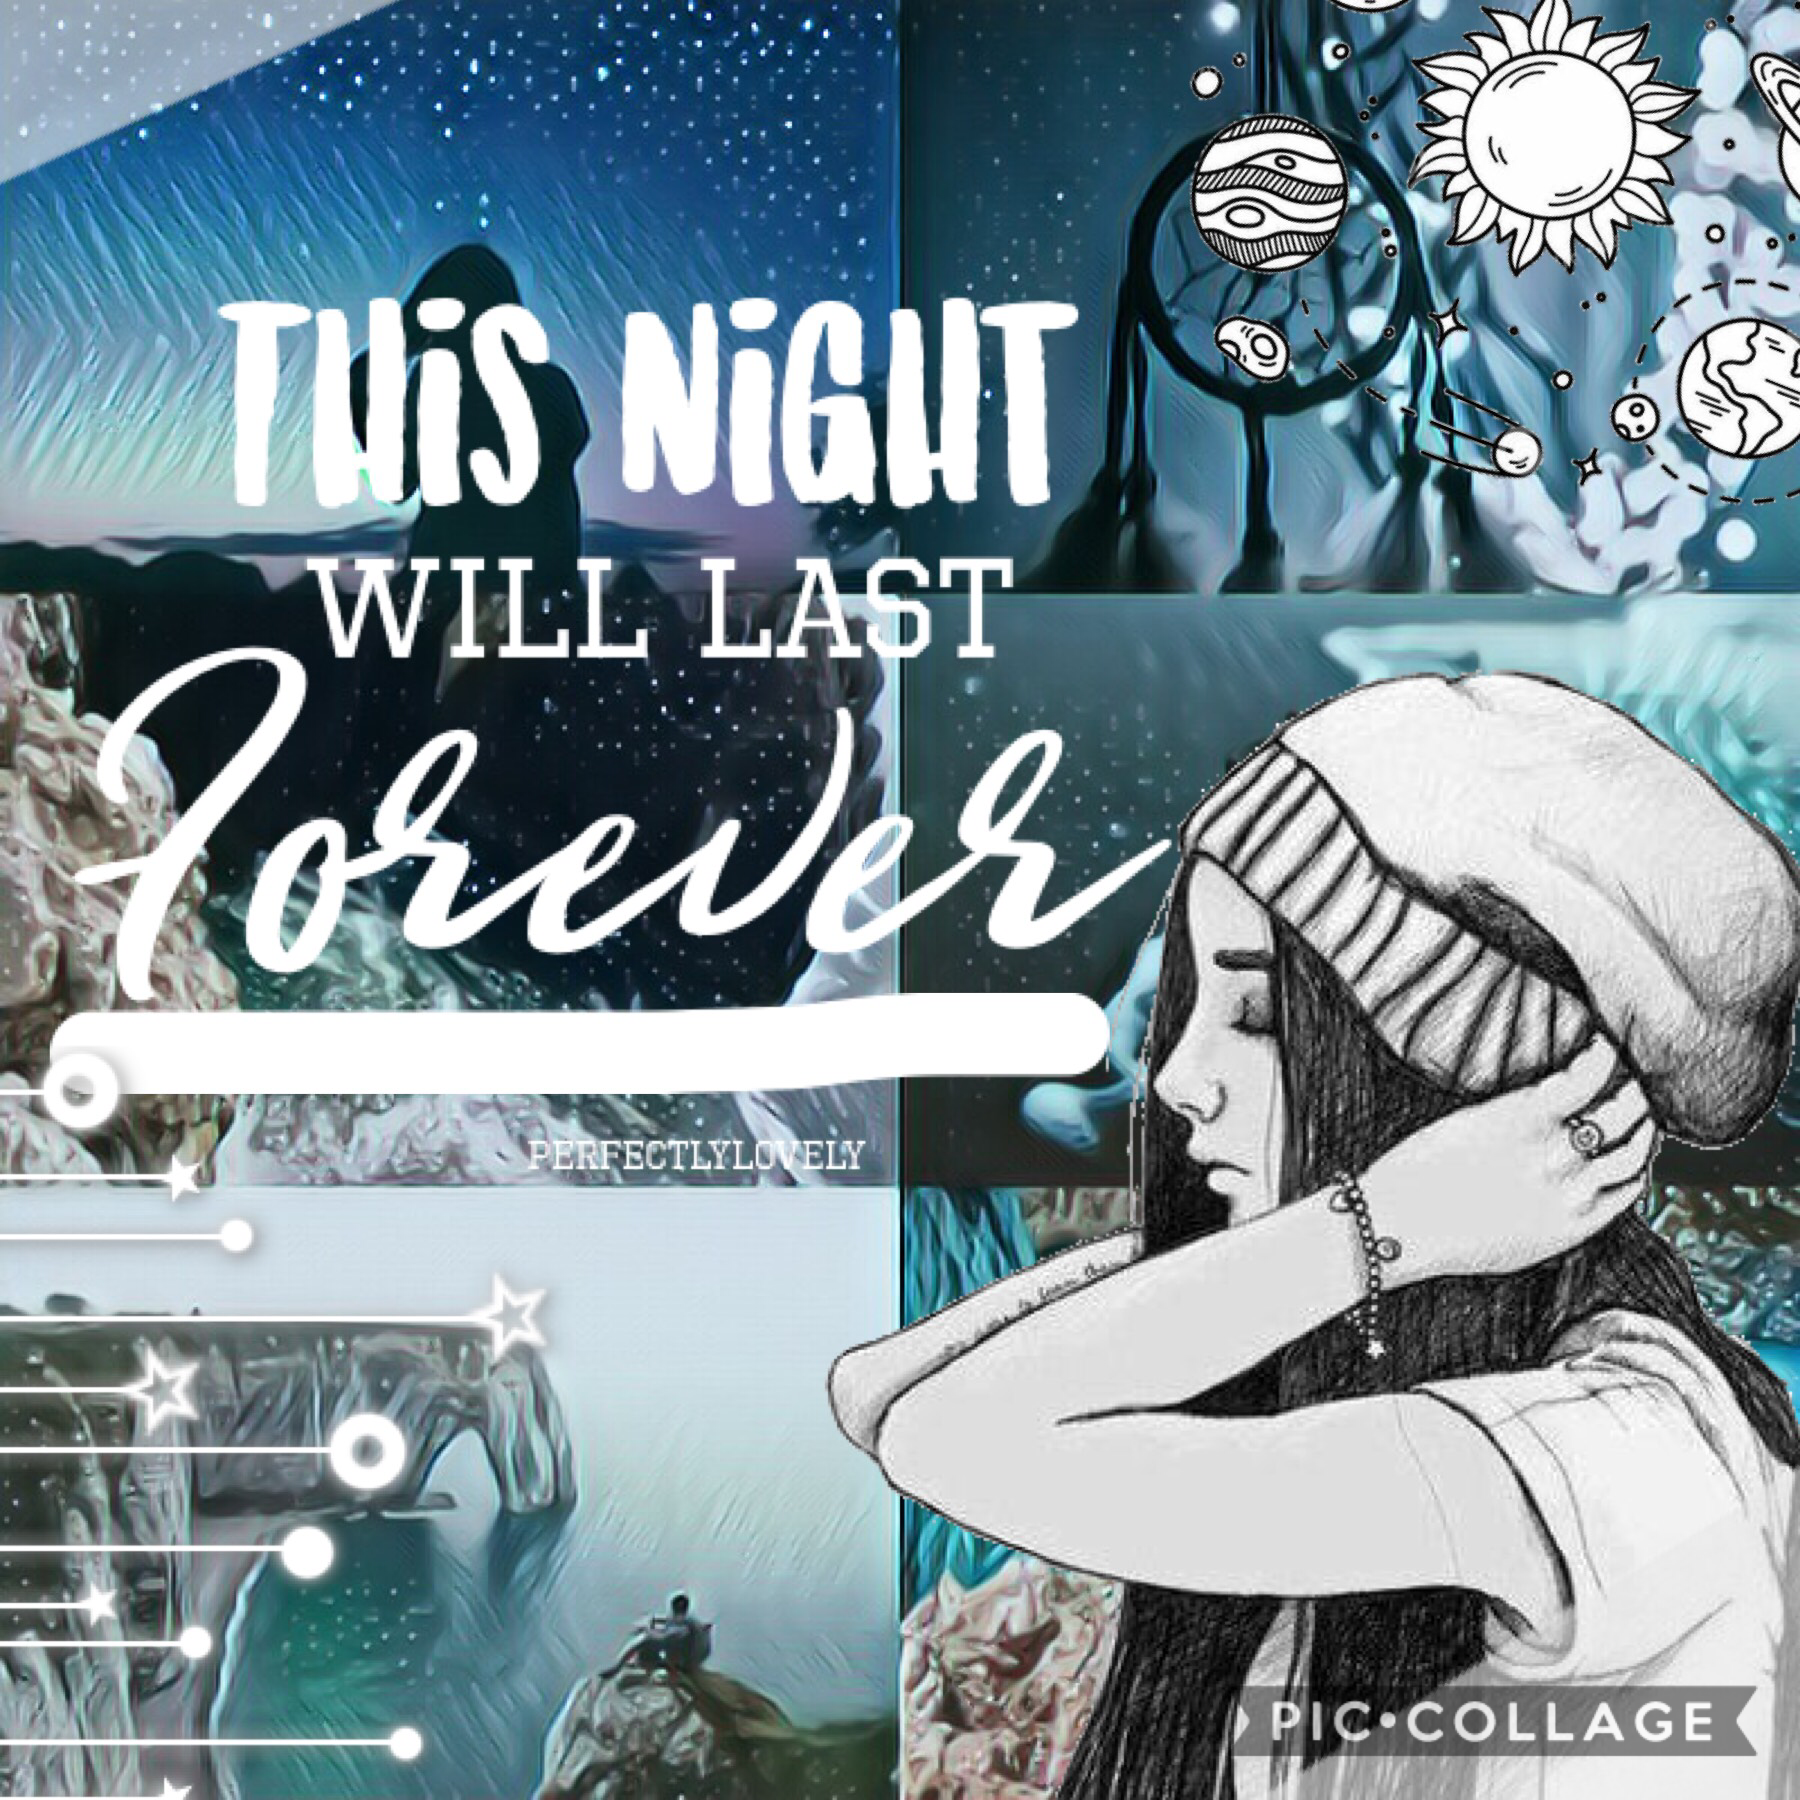 Made this with meh besties at a sleepover. This is a PC only edit, I hope you like it. Love ya. Qotd: favorite color Aotd: yellow